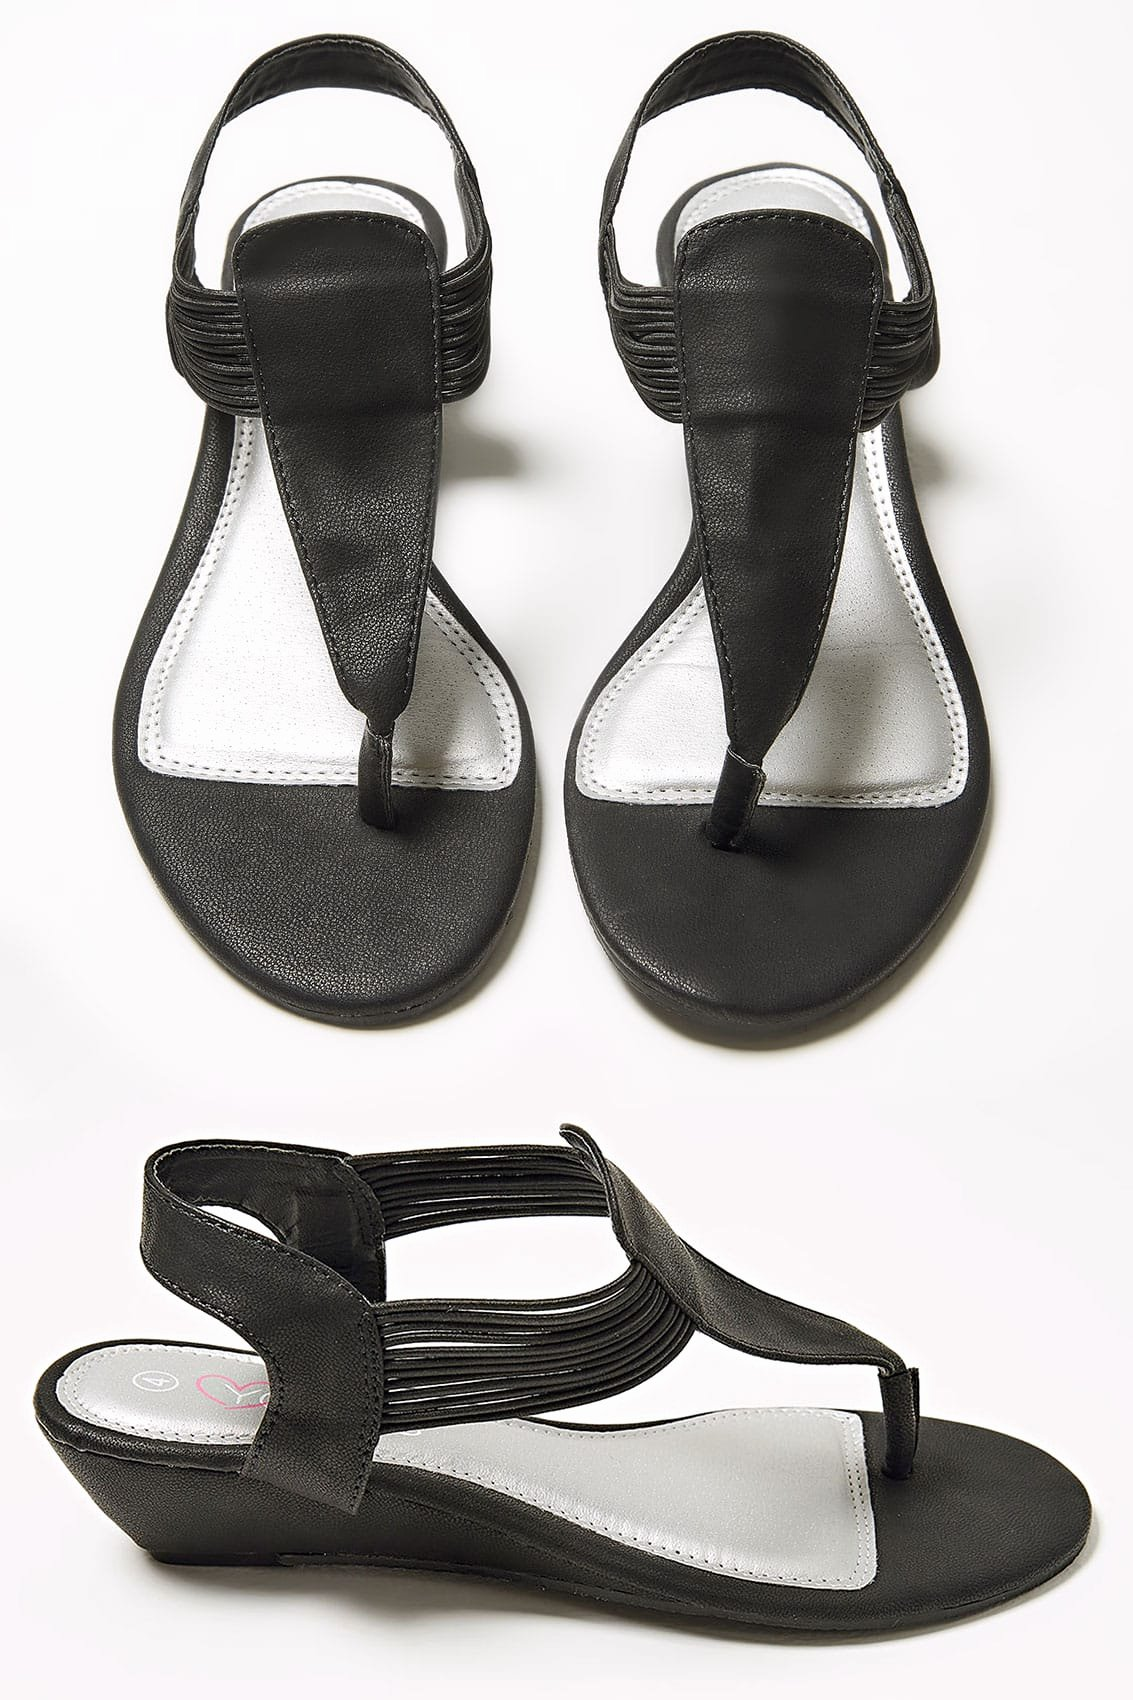 No Refund Policy Template Lovely Black toe Post Wedge Sandal In Eee Fit